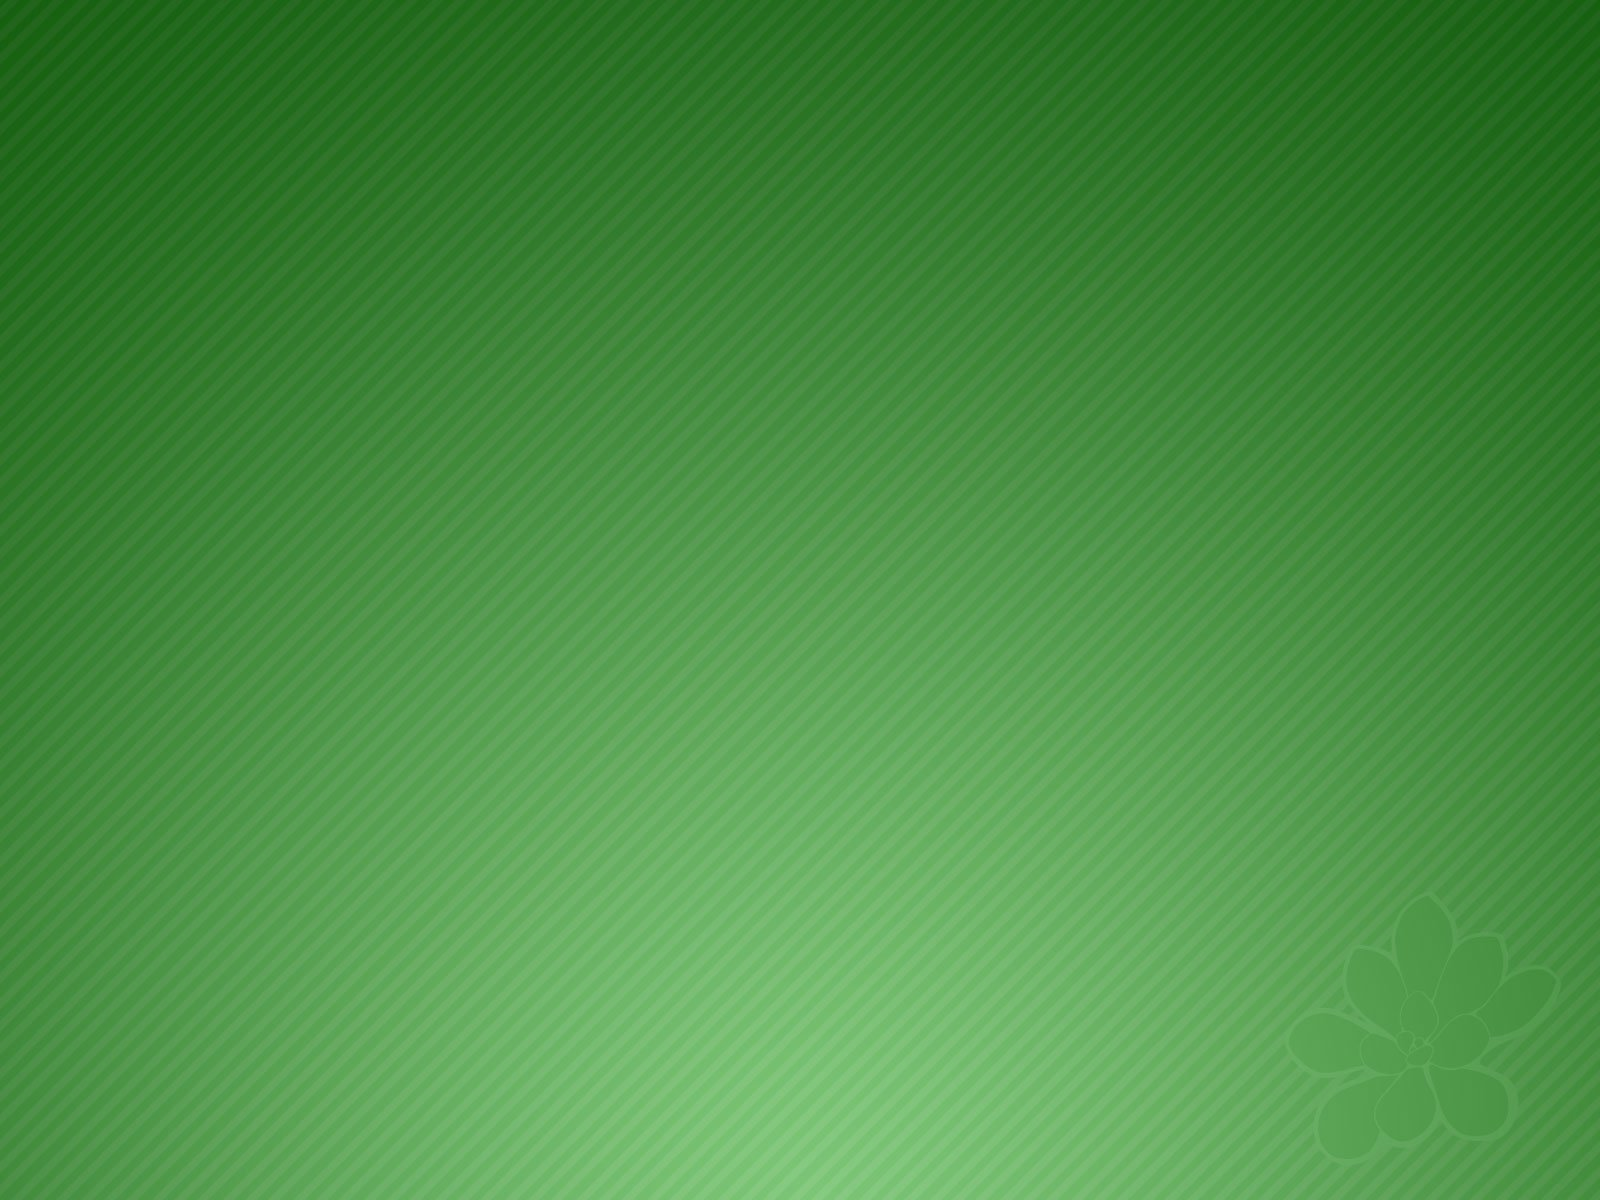 1600x1200 Green style desktop PC and Mac wallpaper 1600x1200